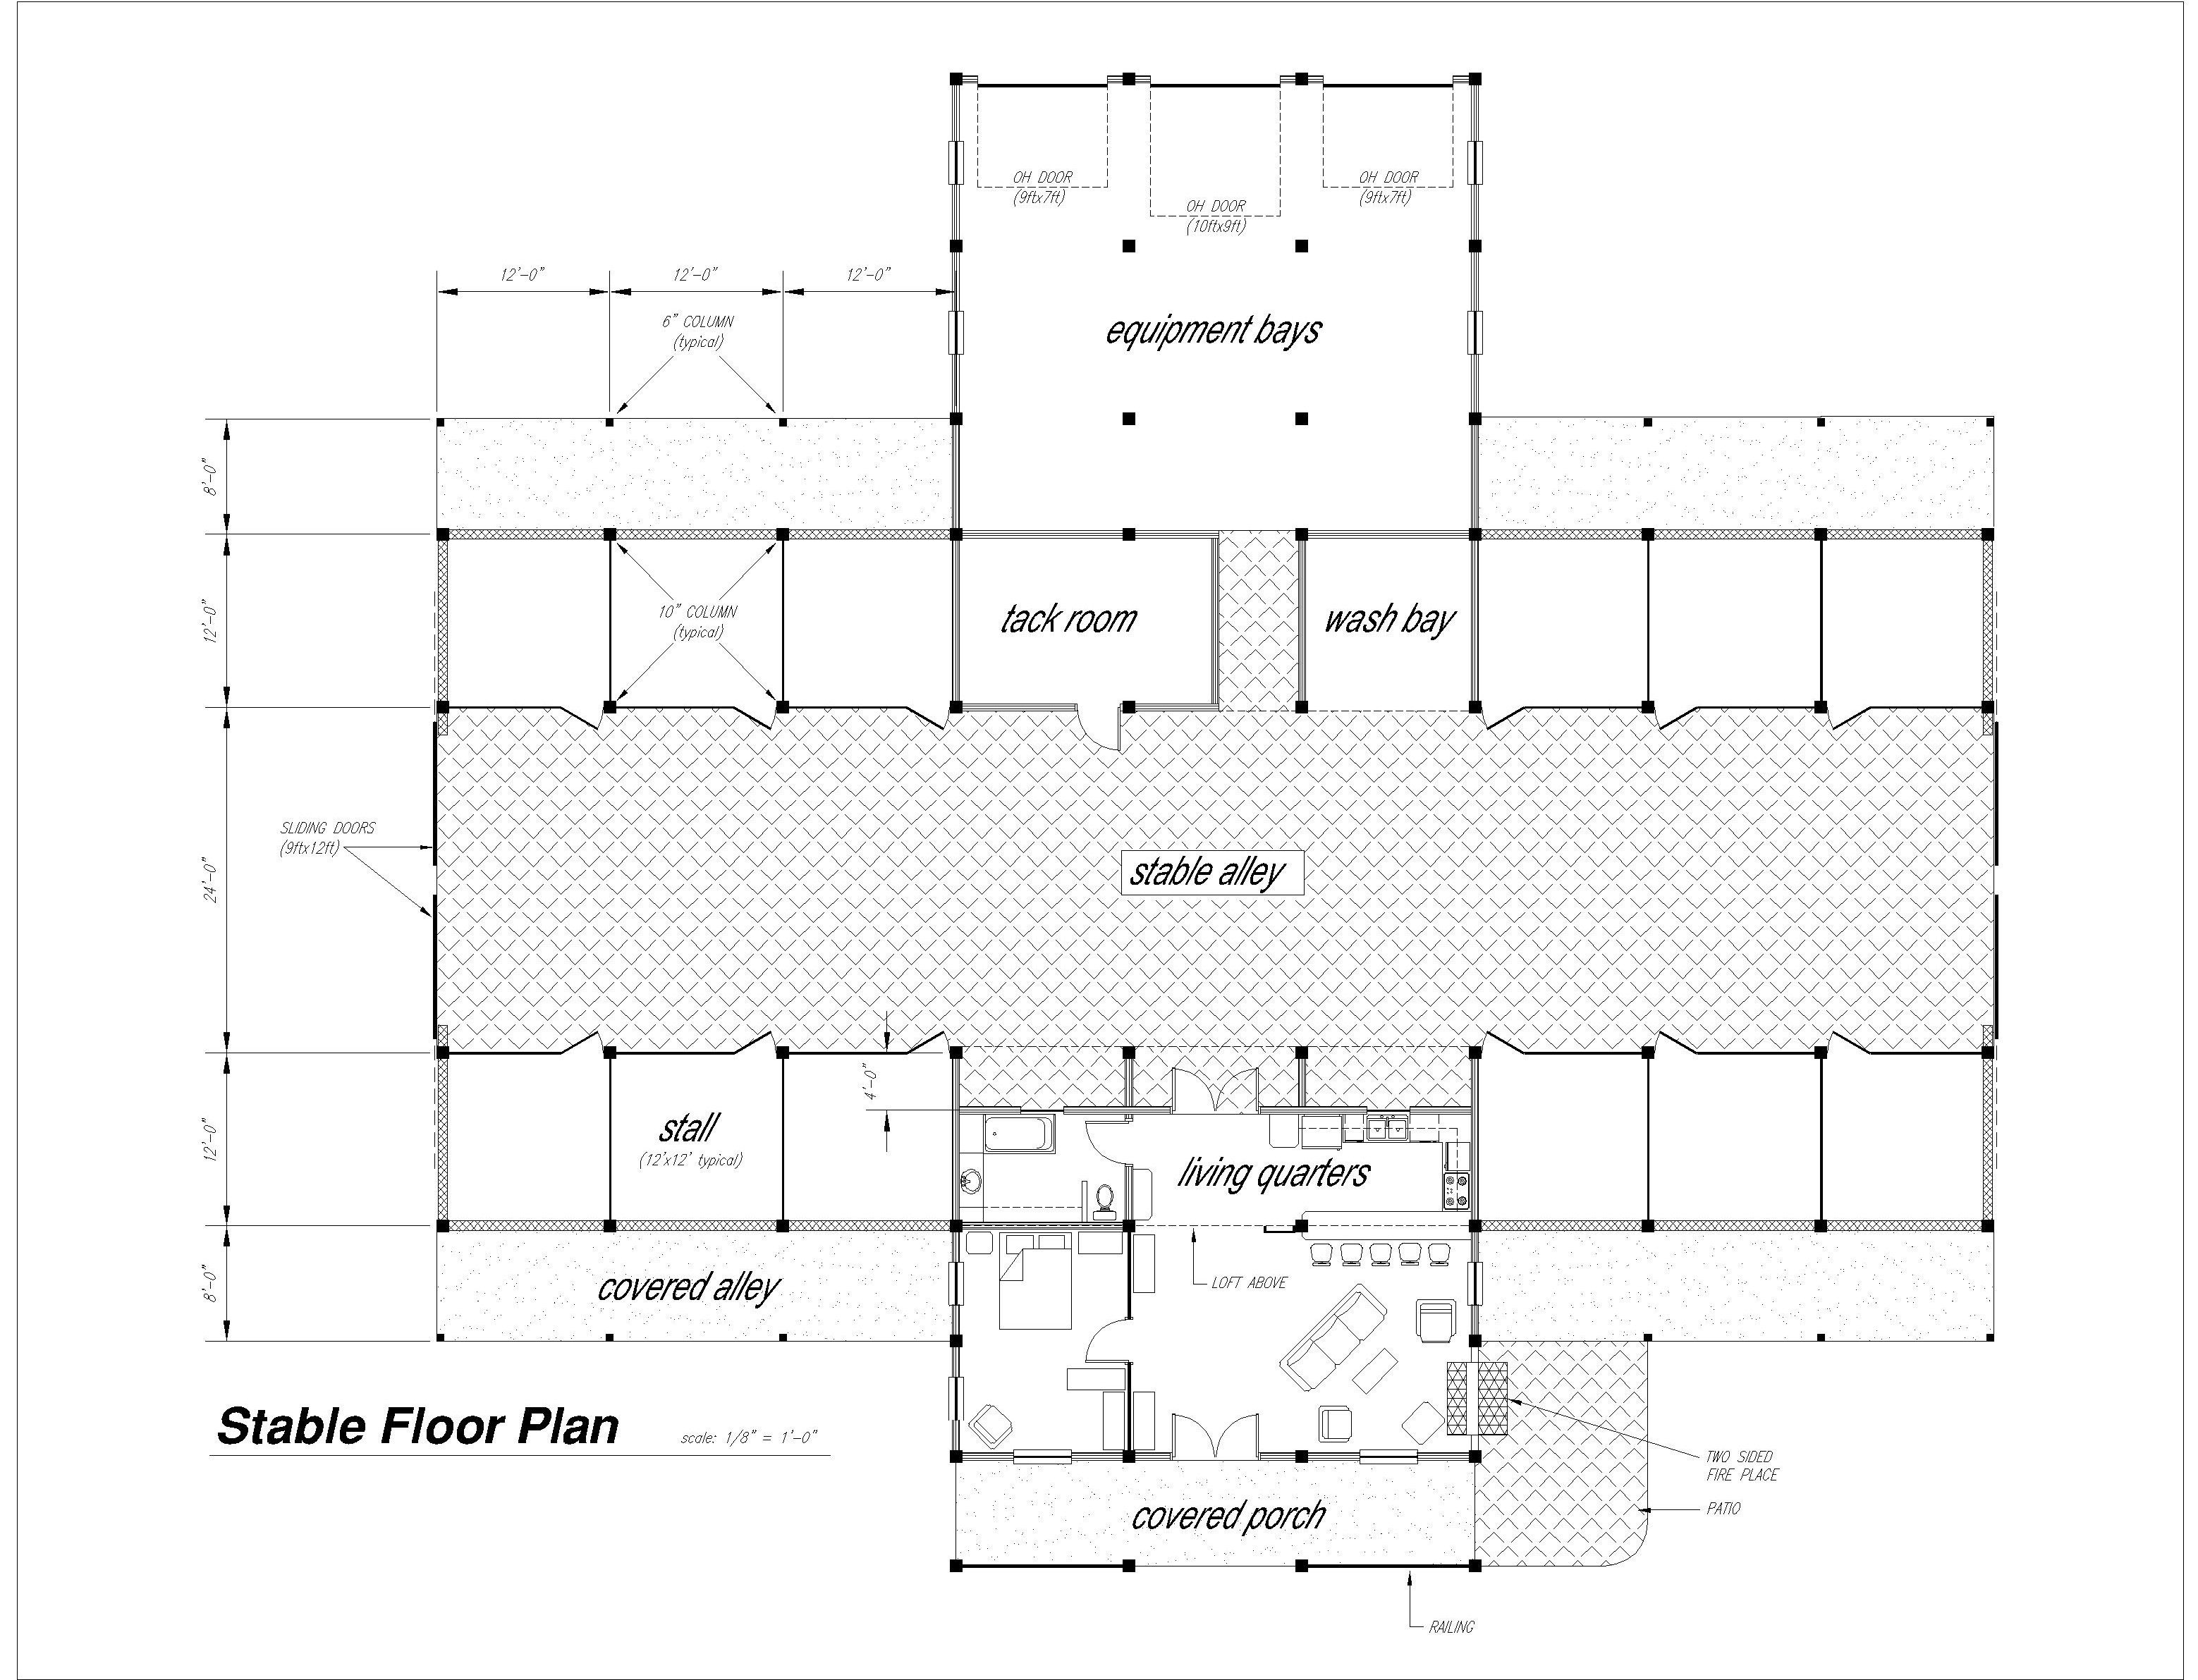 Barn floor plan at riverview stables barn wedding layout for Stable floor plans